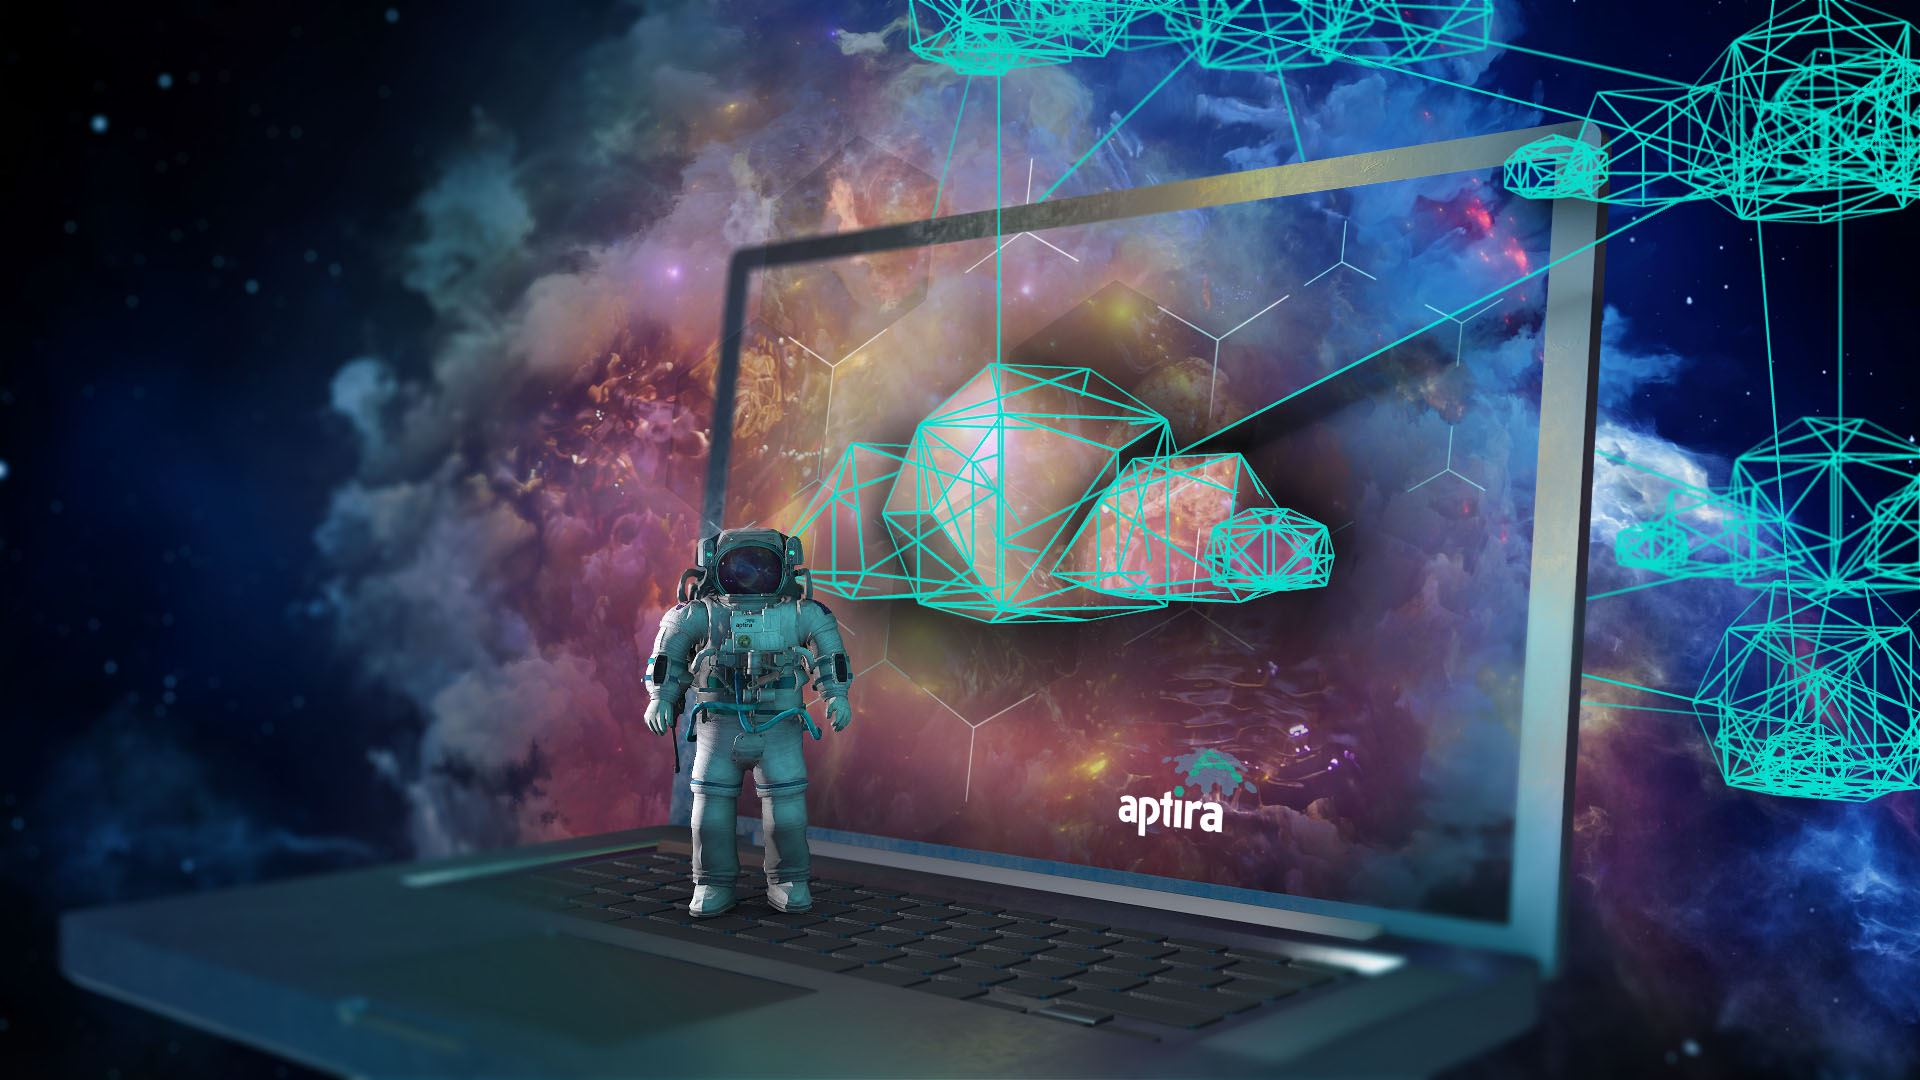 Aptiira: The Network is the Computer. Part 3 – Cloud Computing is born